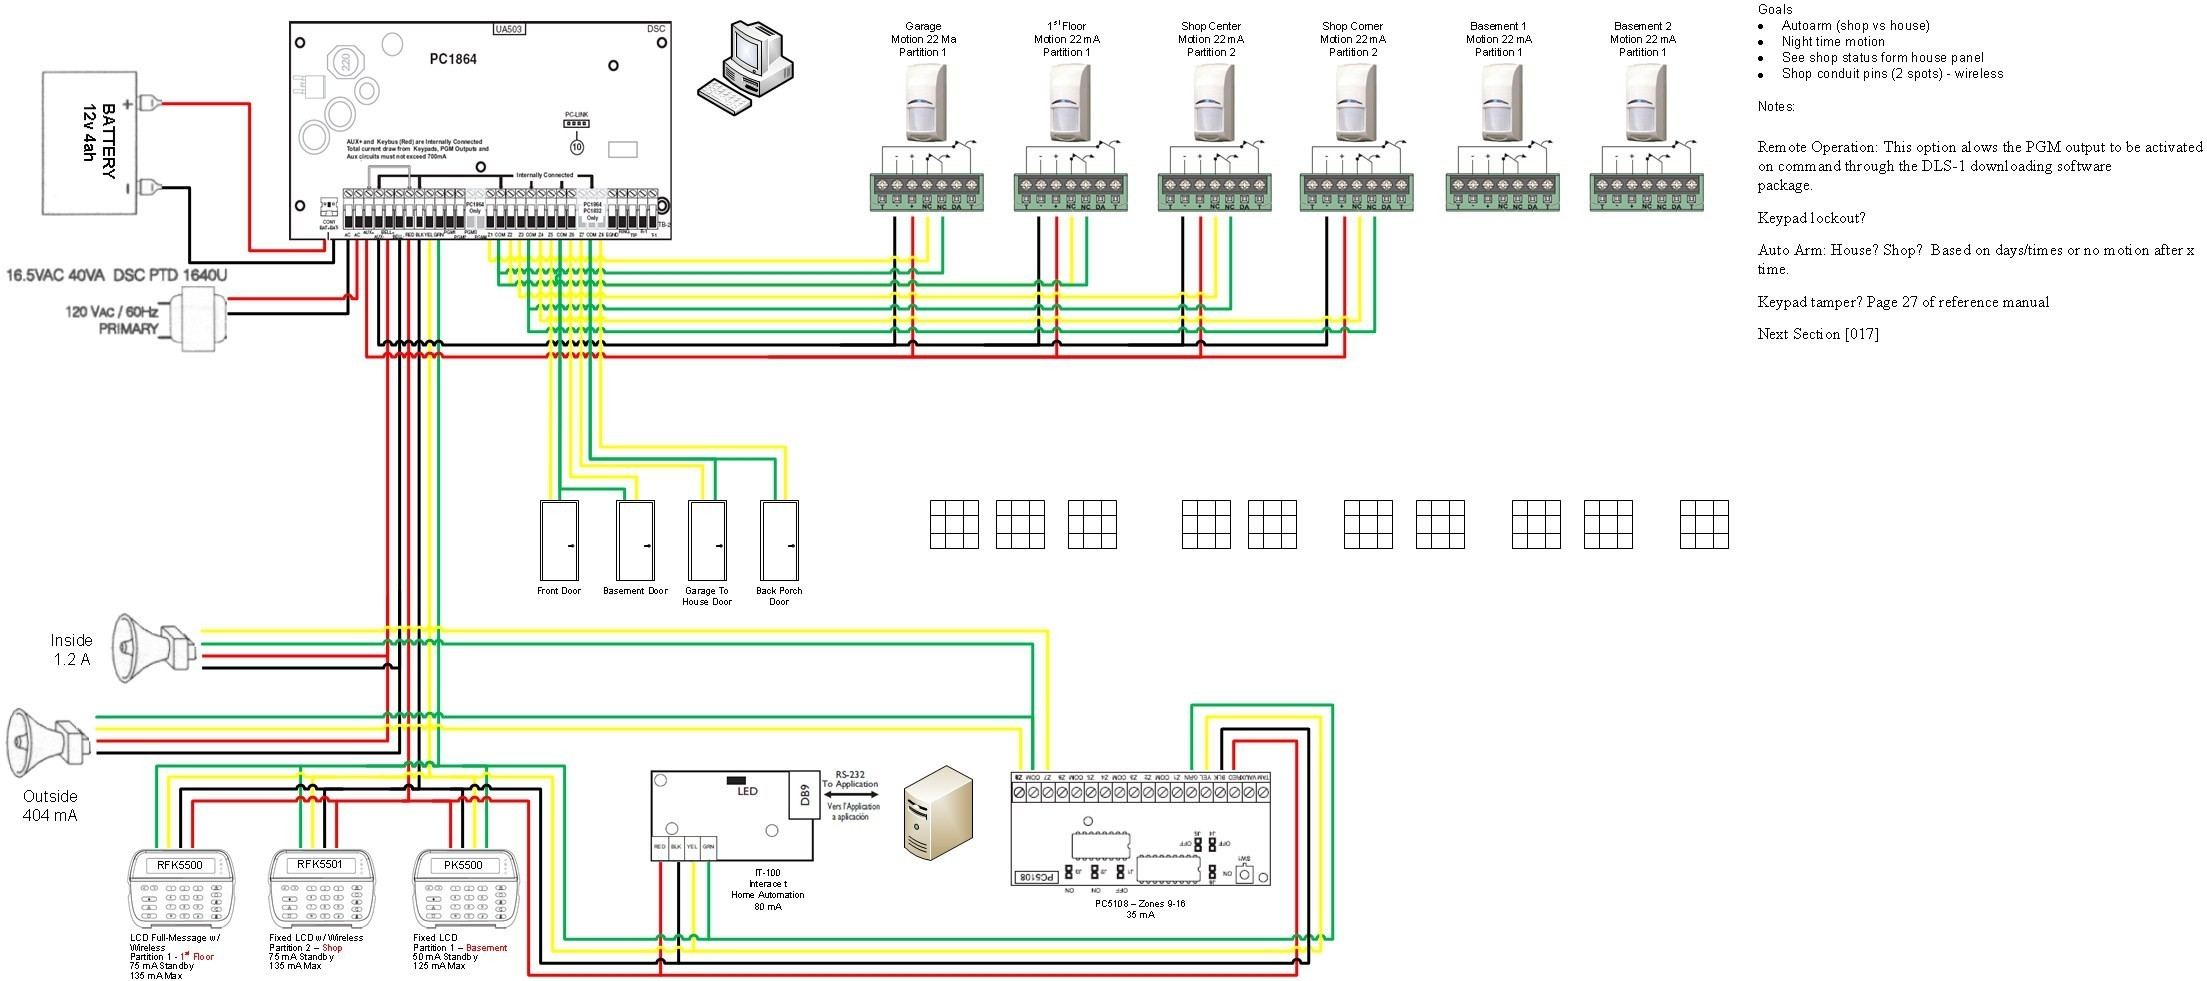 Home Security System Wiring Diagram Dsc Alarm Wiring Diagram Wiring Diagram Of Home Security System Wiring Diagram